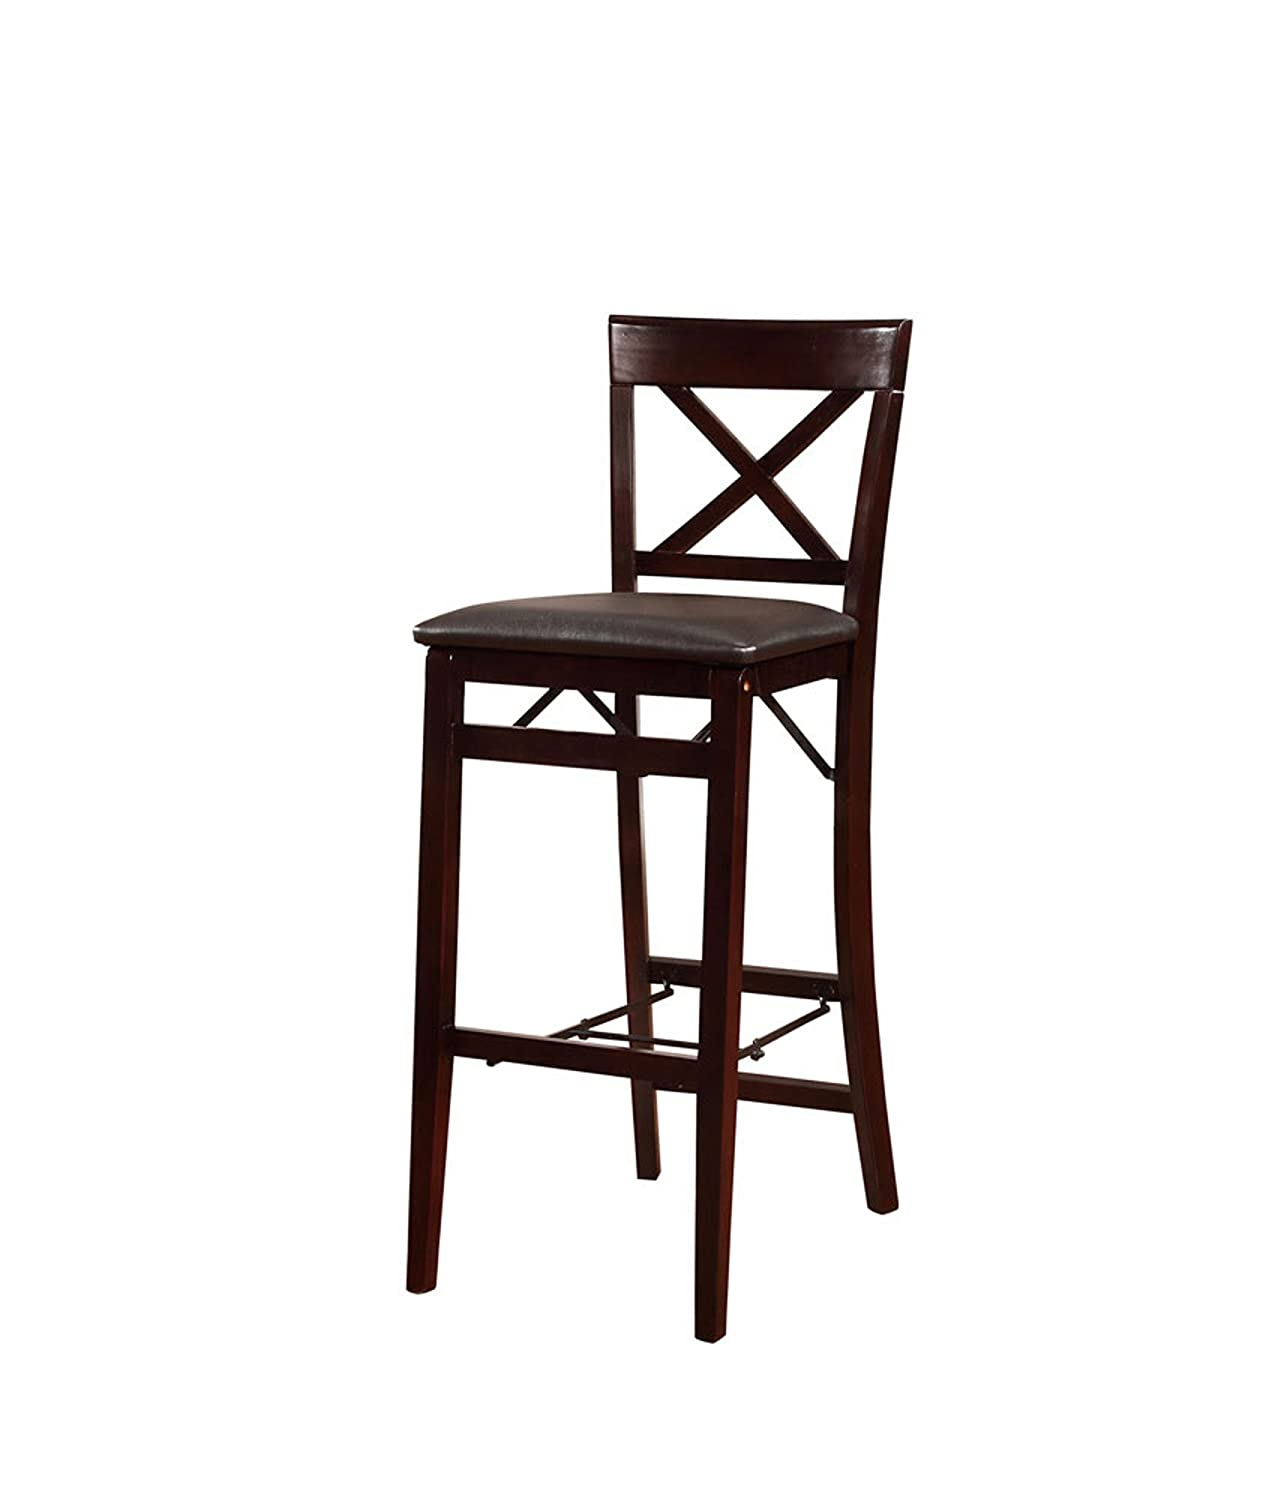 contemporary top ikea in winsome folding bar fabric colors your with the rattan image available high wooden choice backrest nine stool stools amazing wallpaper foldable of exceptional franklin